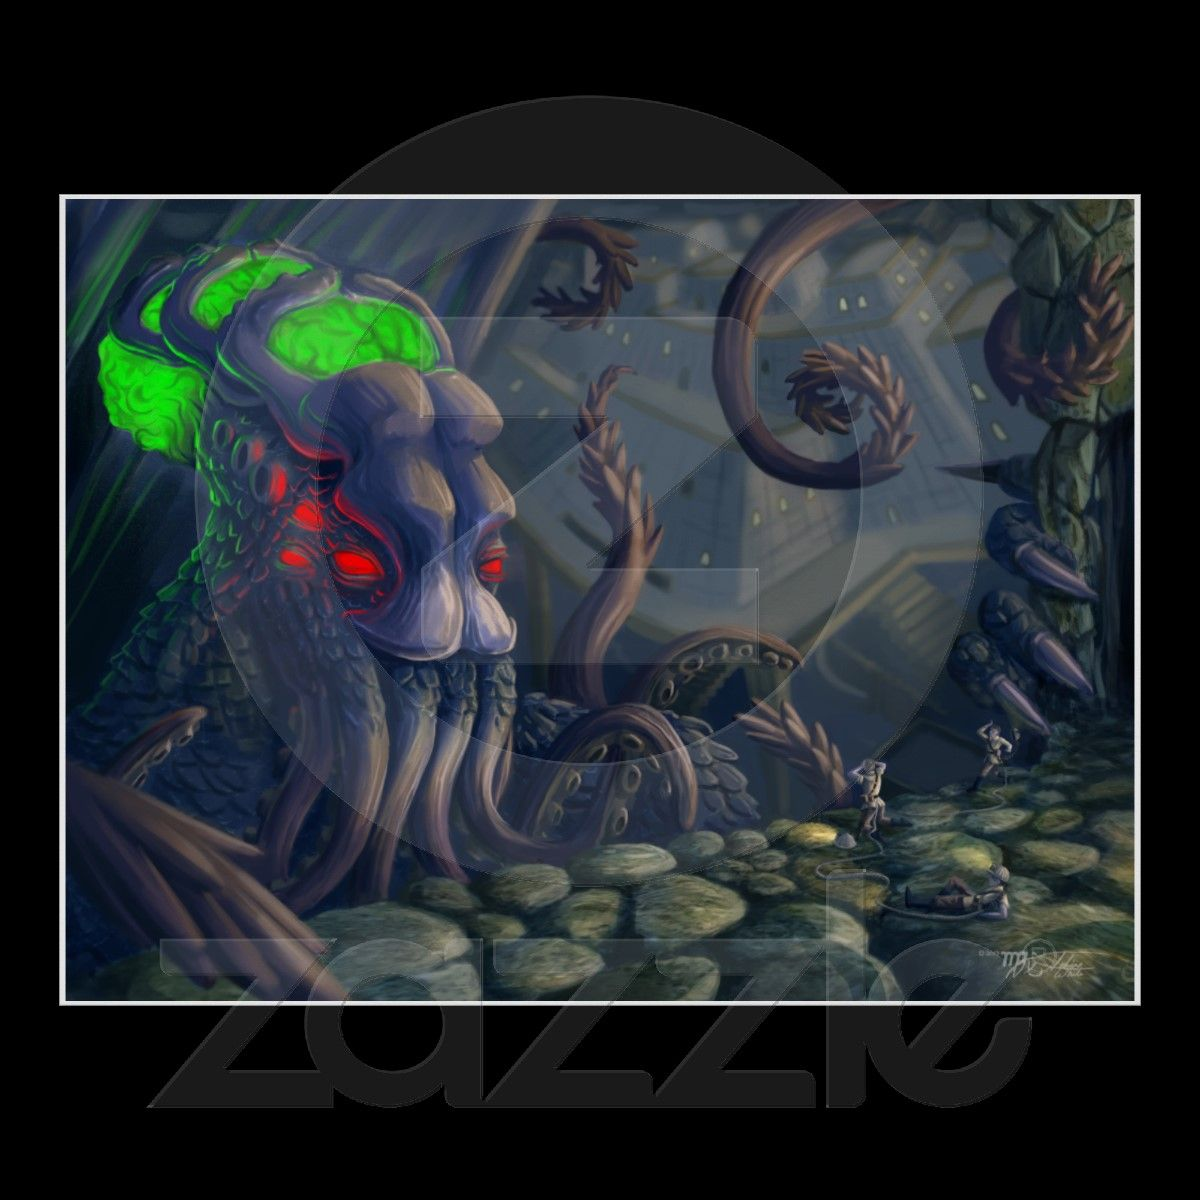 #Lovecraft 's Dreamlands: #Cthulhu 's Uninvited from Zazzle.com as low as $21.55 for a 32X24, comes in many sizes and print qualities.